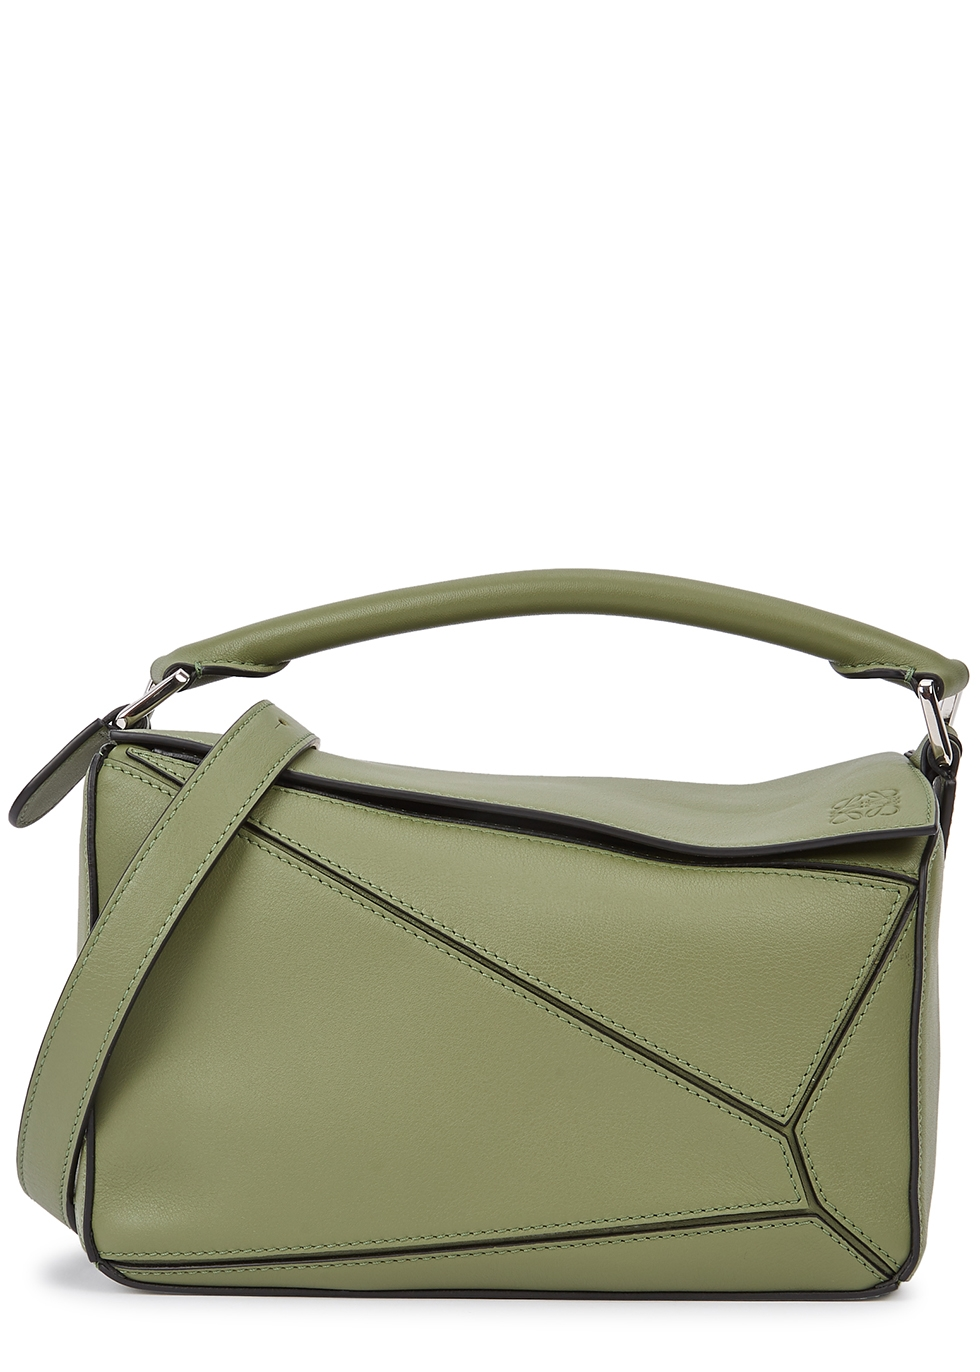 Puzzle small green leather cross-body bag